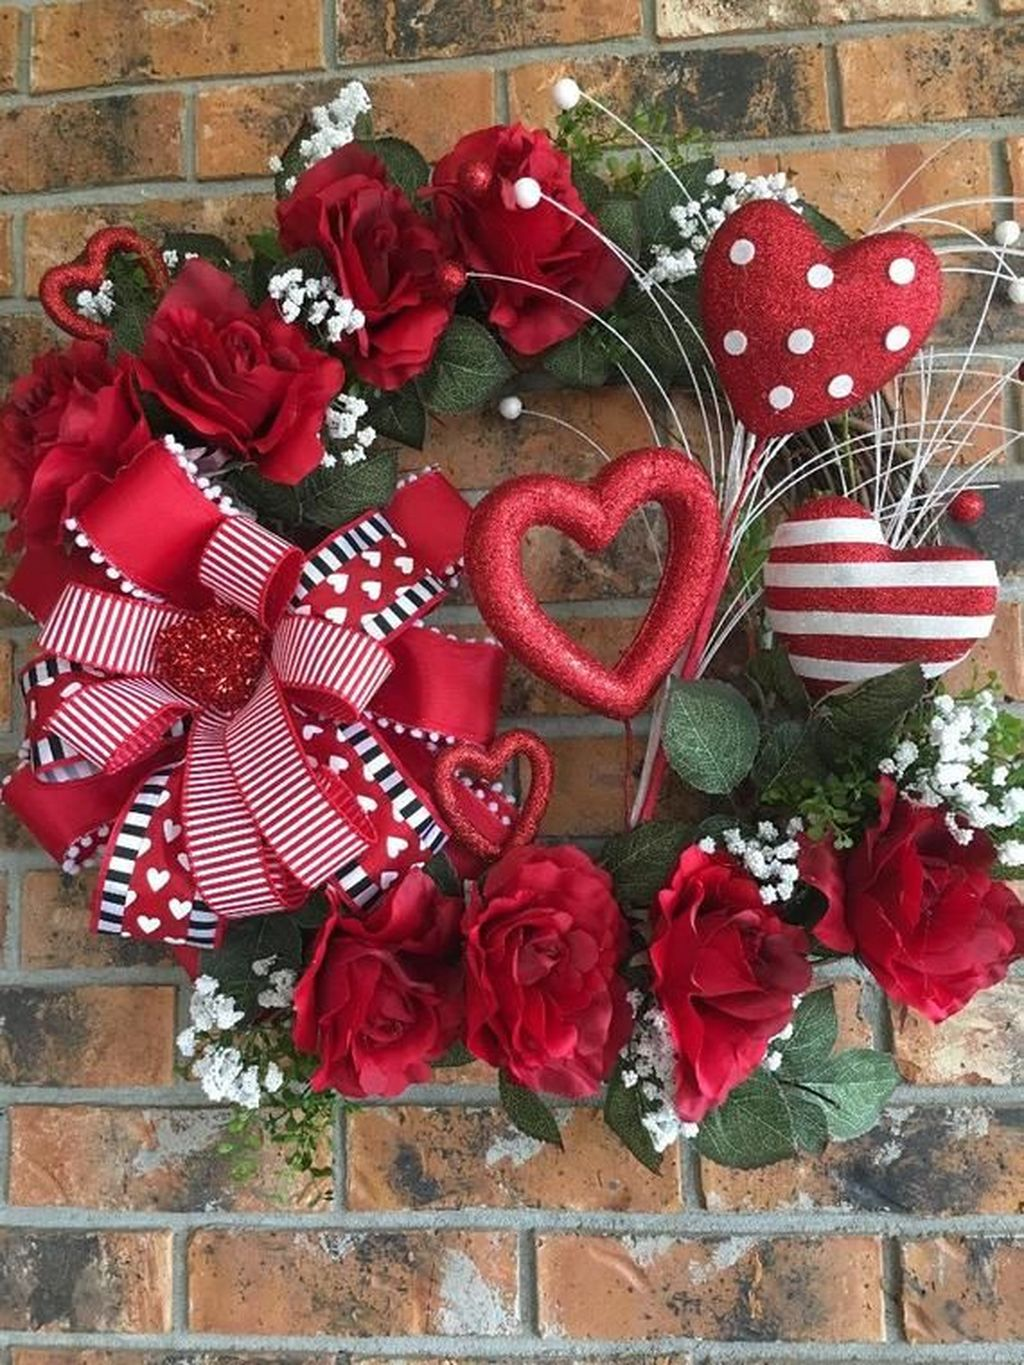 Inspiring Outdoor Valentine Decor Ideas That You Definitely Like 24